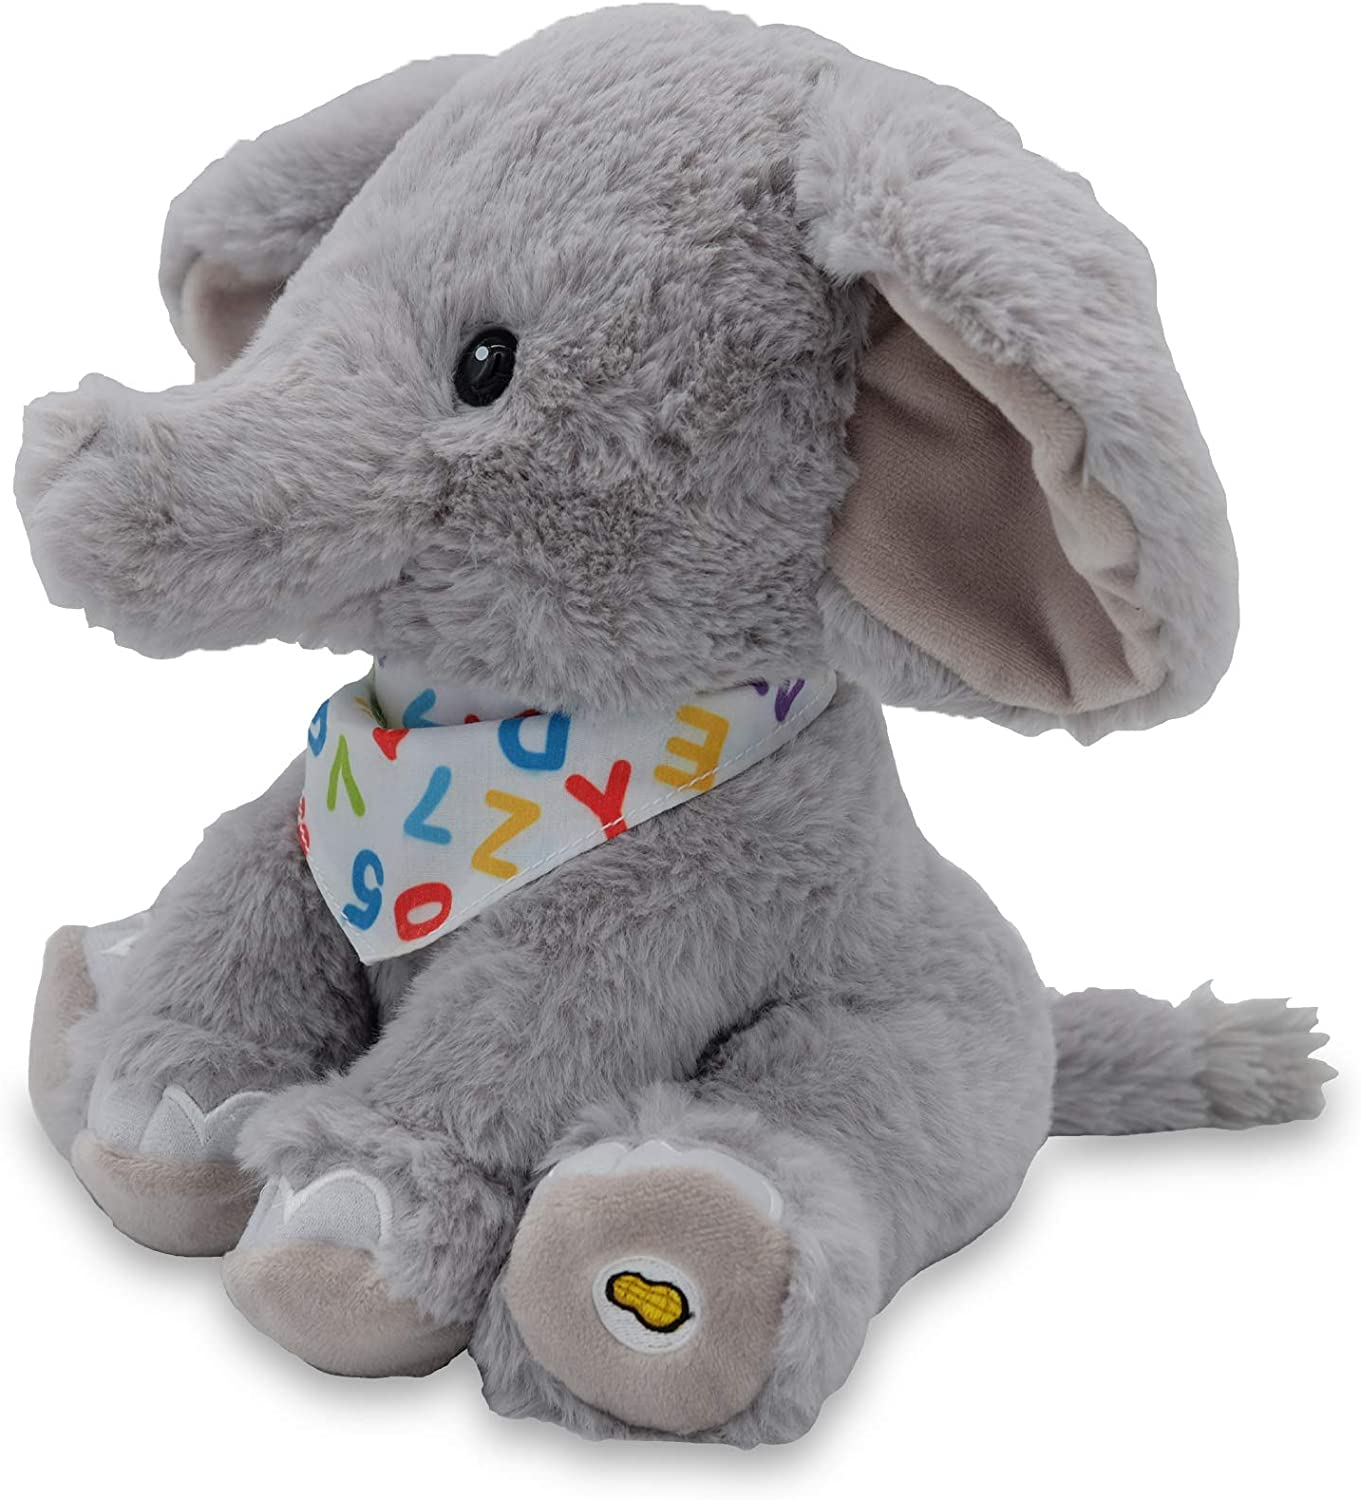 Animated Singing Elephant Stuffed Animal Plush Toy Wiggles Ears to ABC Song and Ten Little Elephants Alphabet Elroy Cuddle Barn 12 Inches